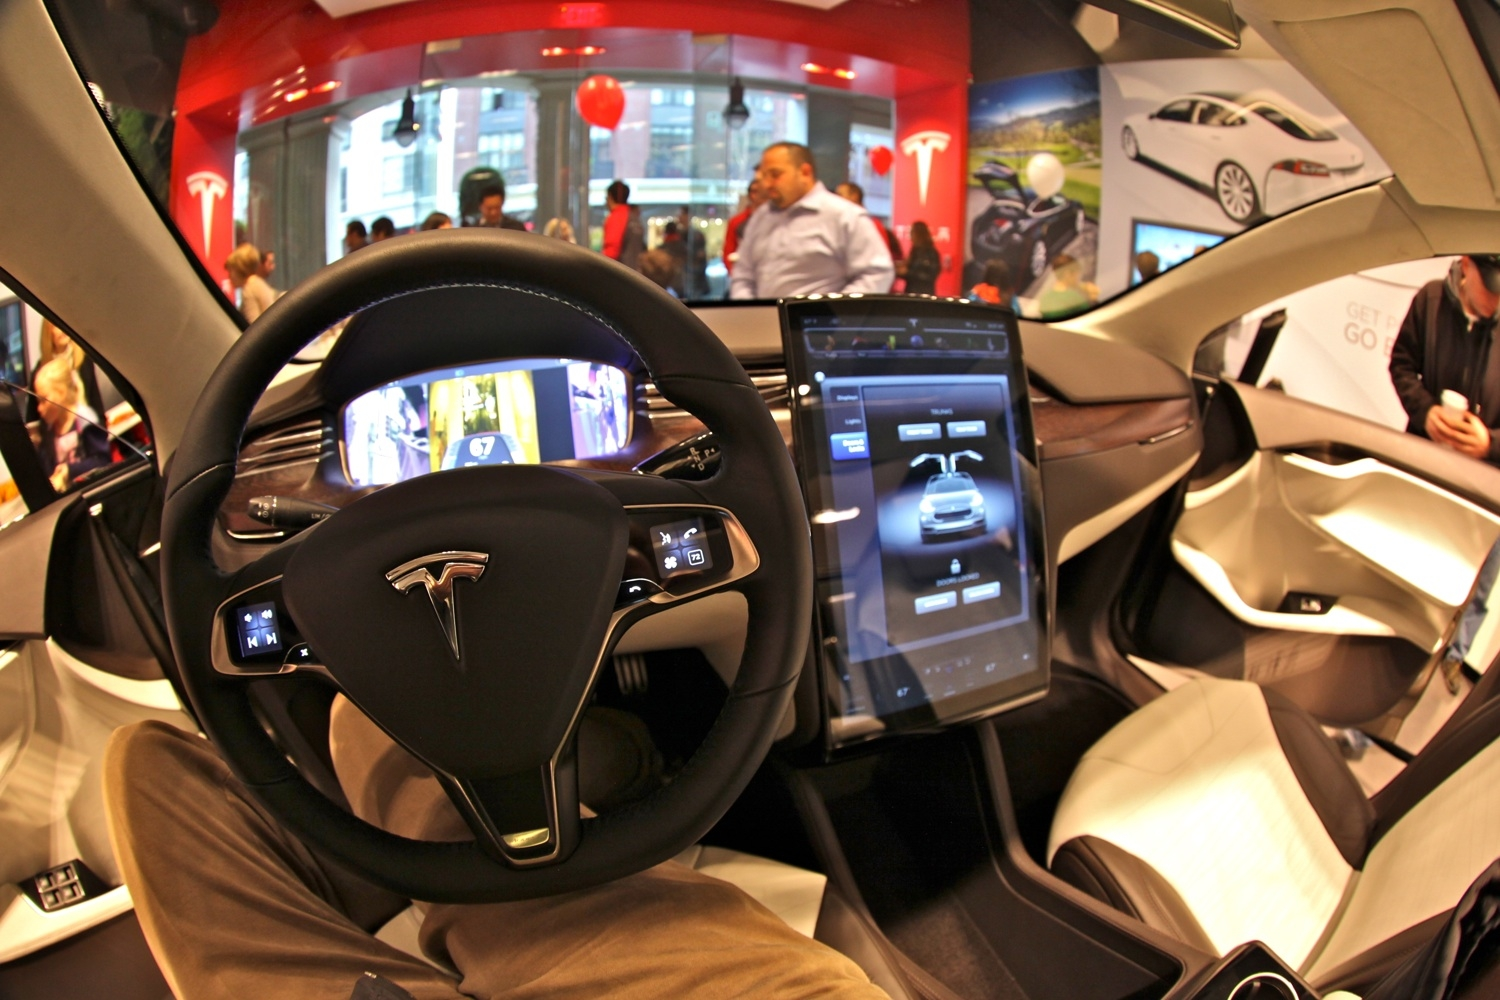 Elon Musk Invites Hackers To Break Into Tesla Cars